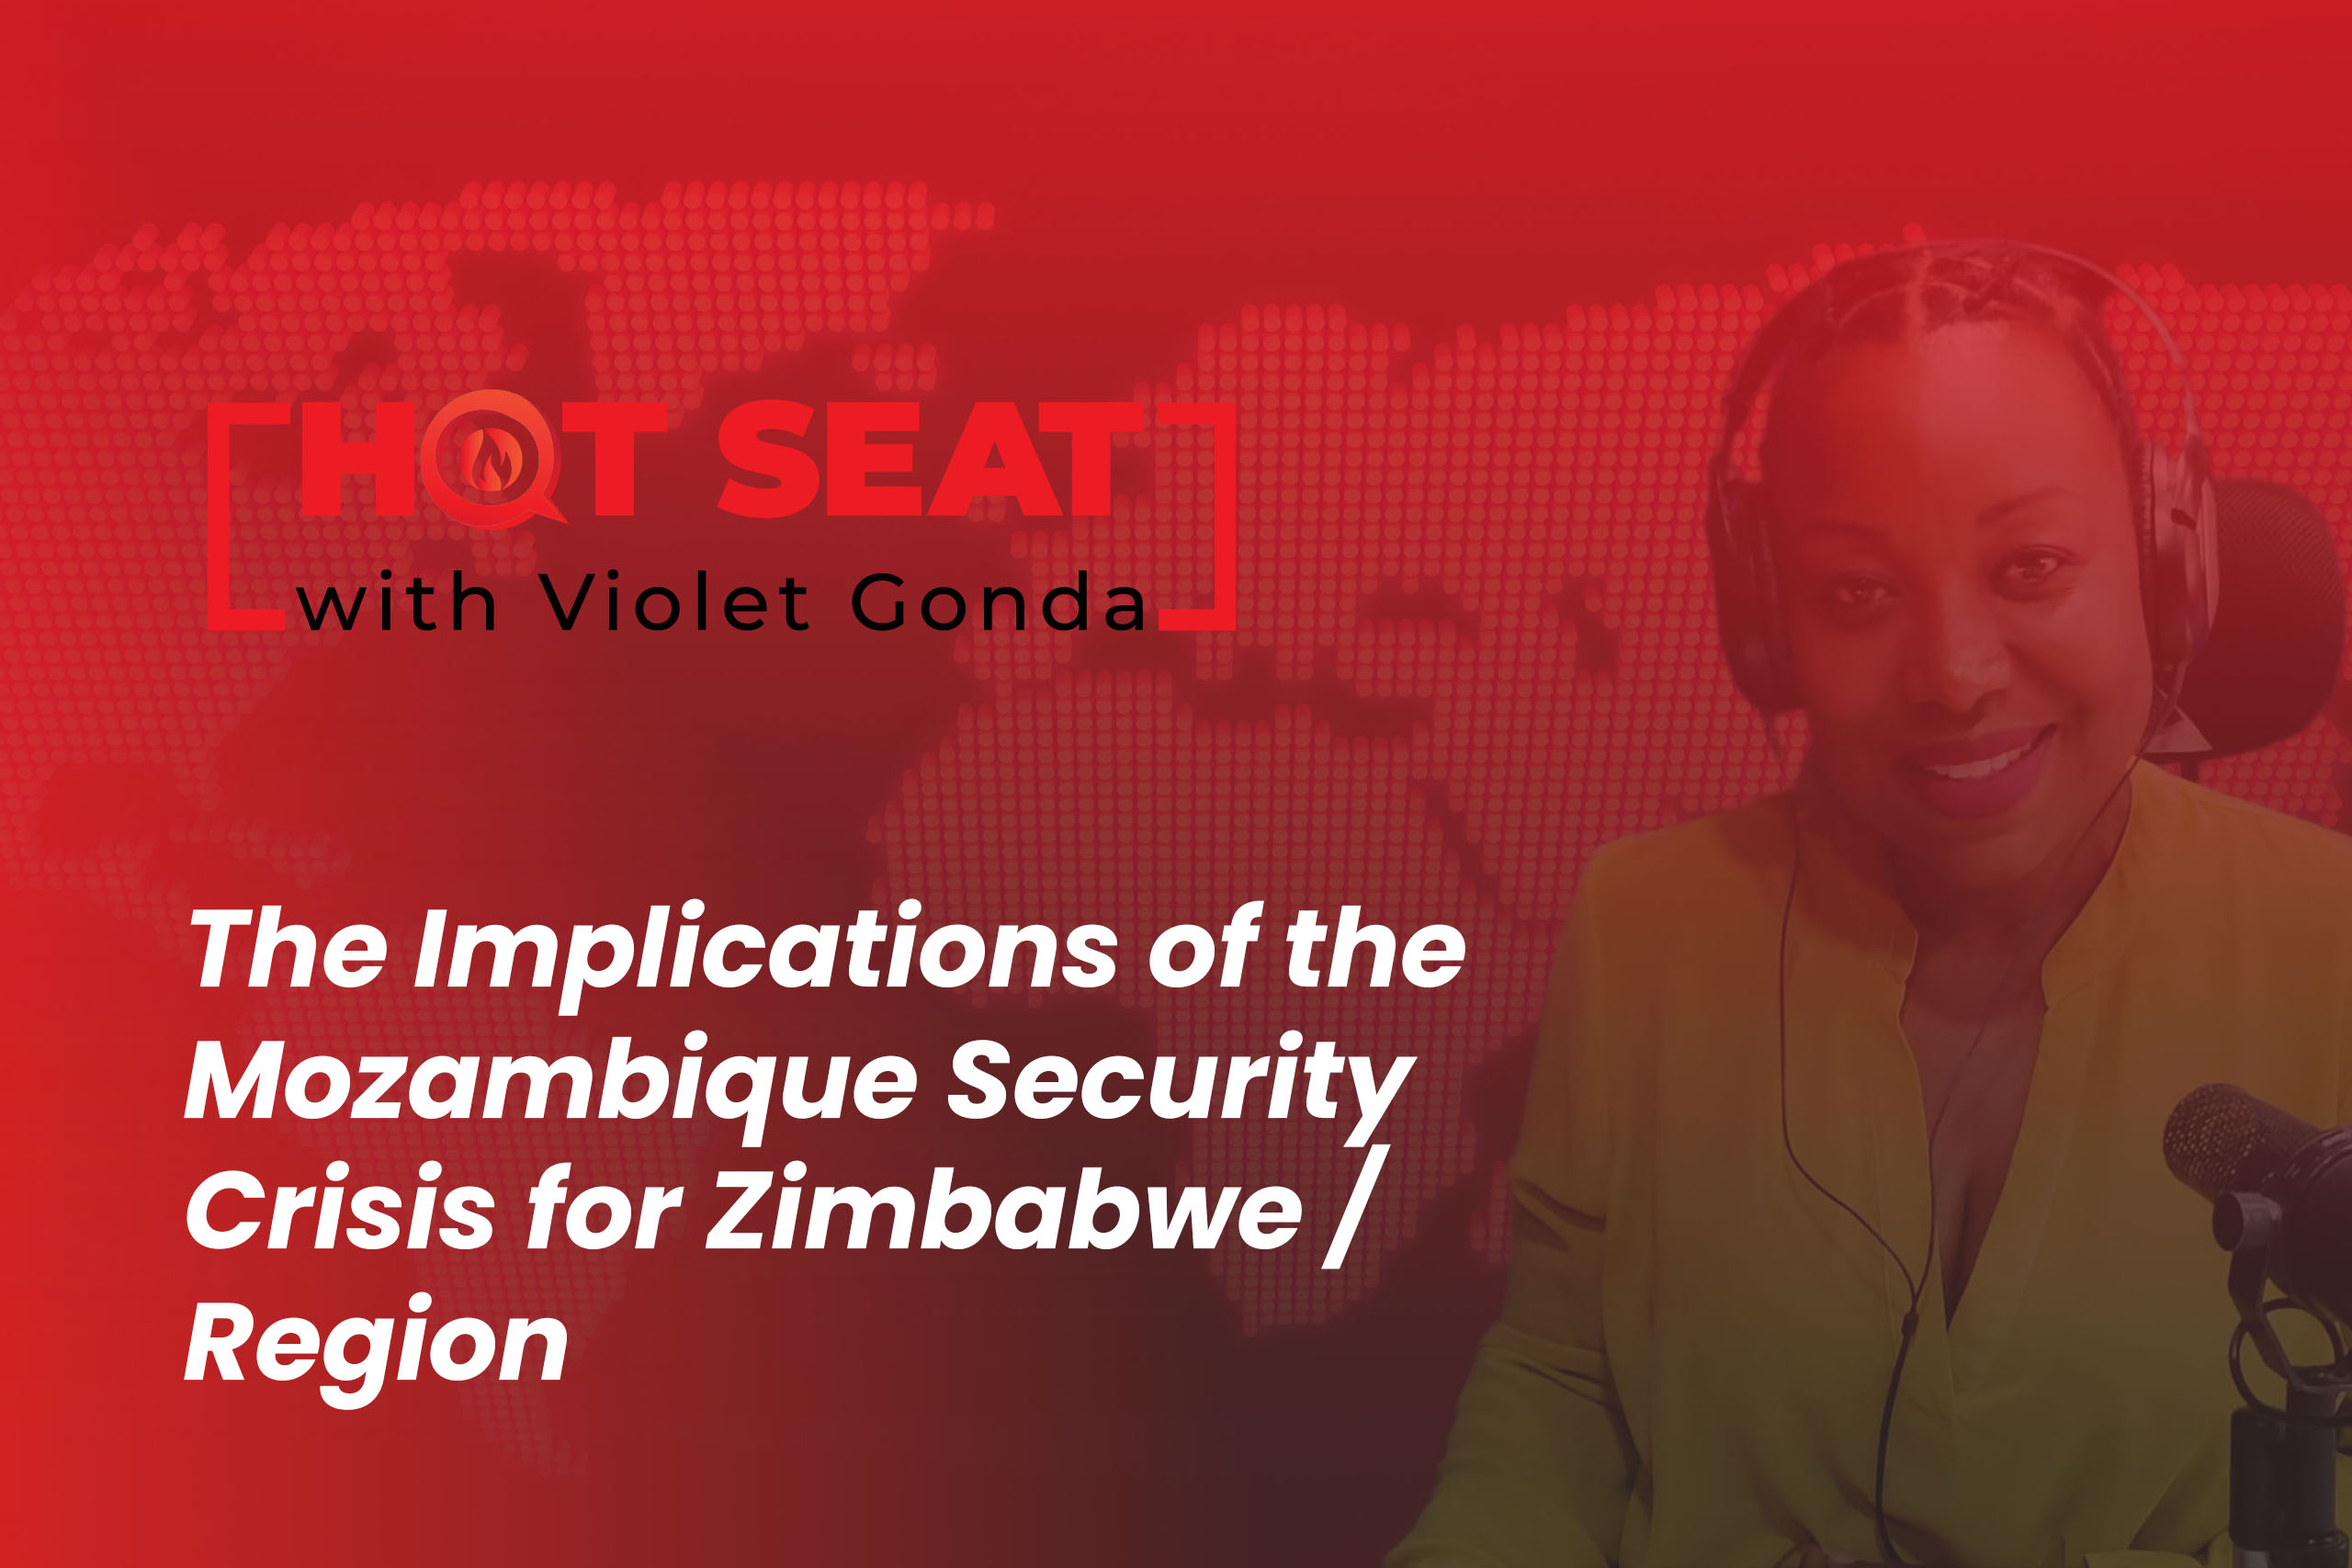 The Implications of the Mozambique Security Crisis for Zimbabwe/Region